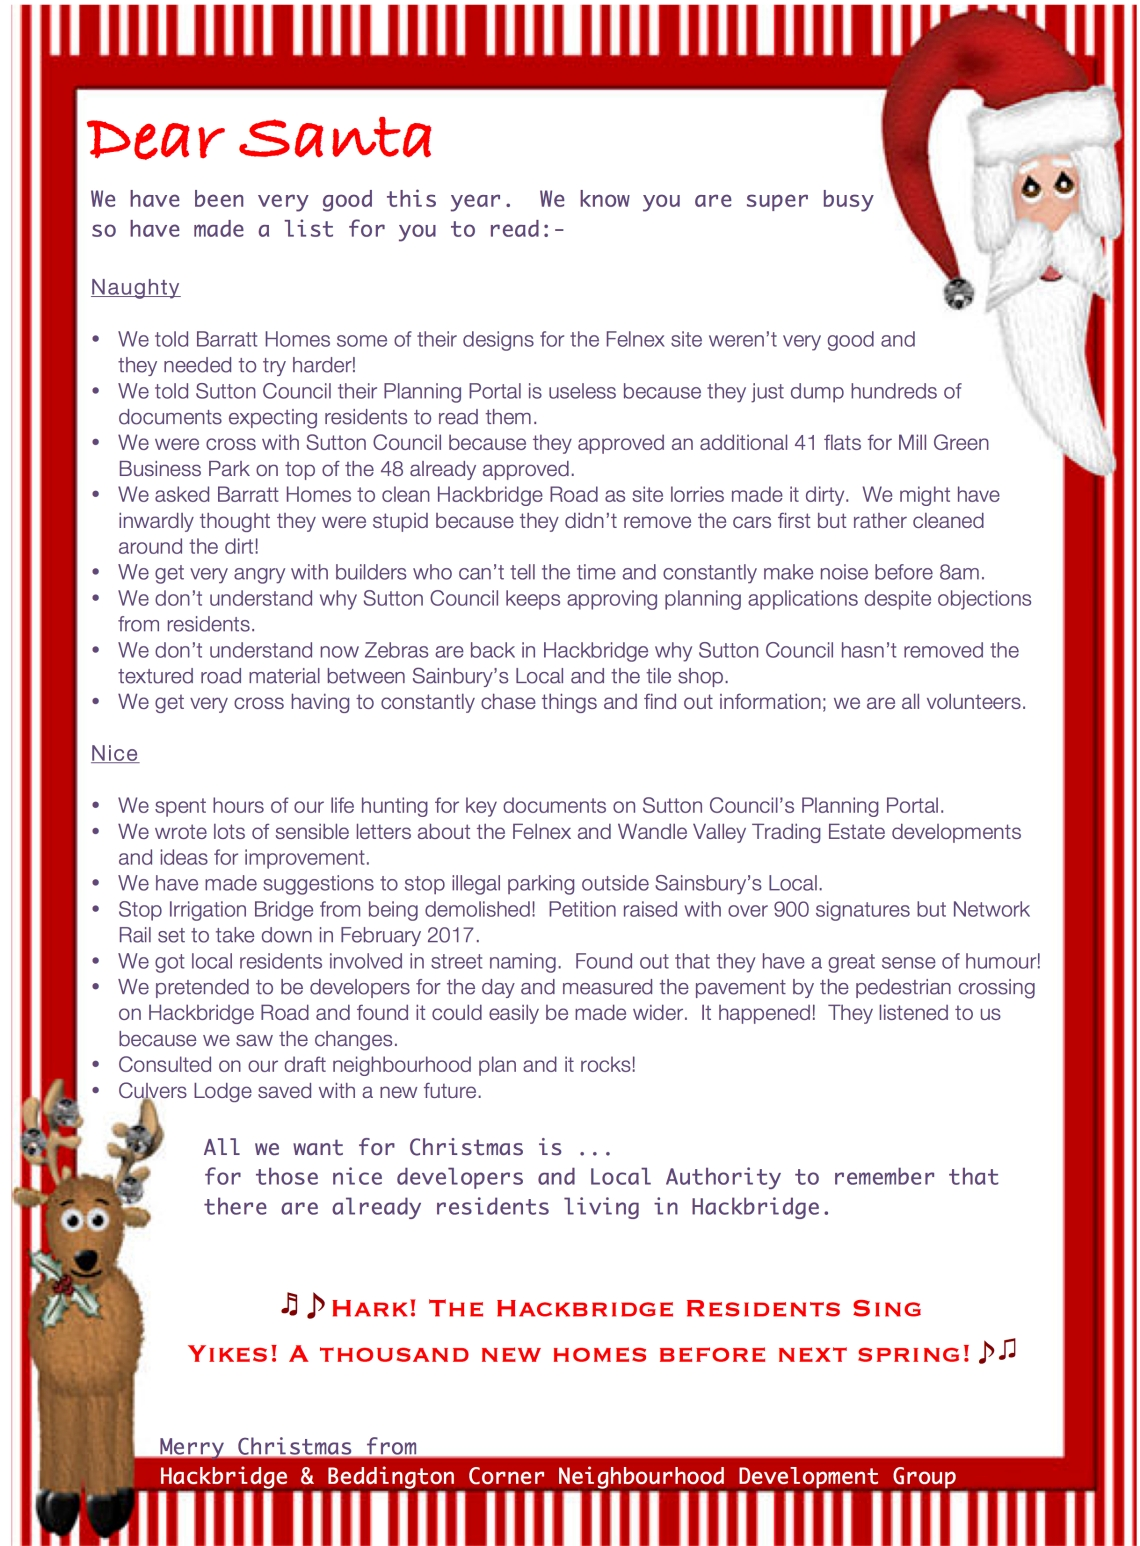 Our Letter To Santa  Hackbridge  Beddington Corner Neighbourhood